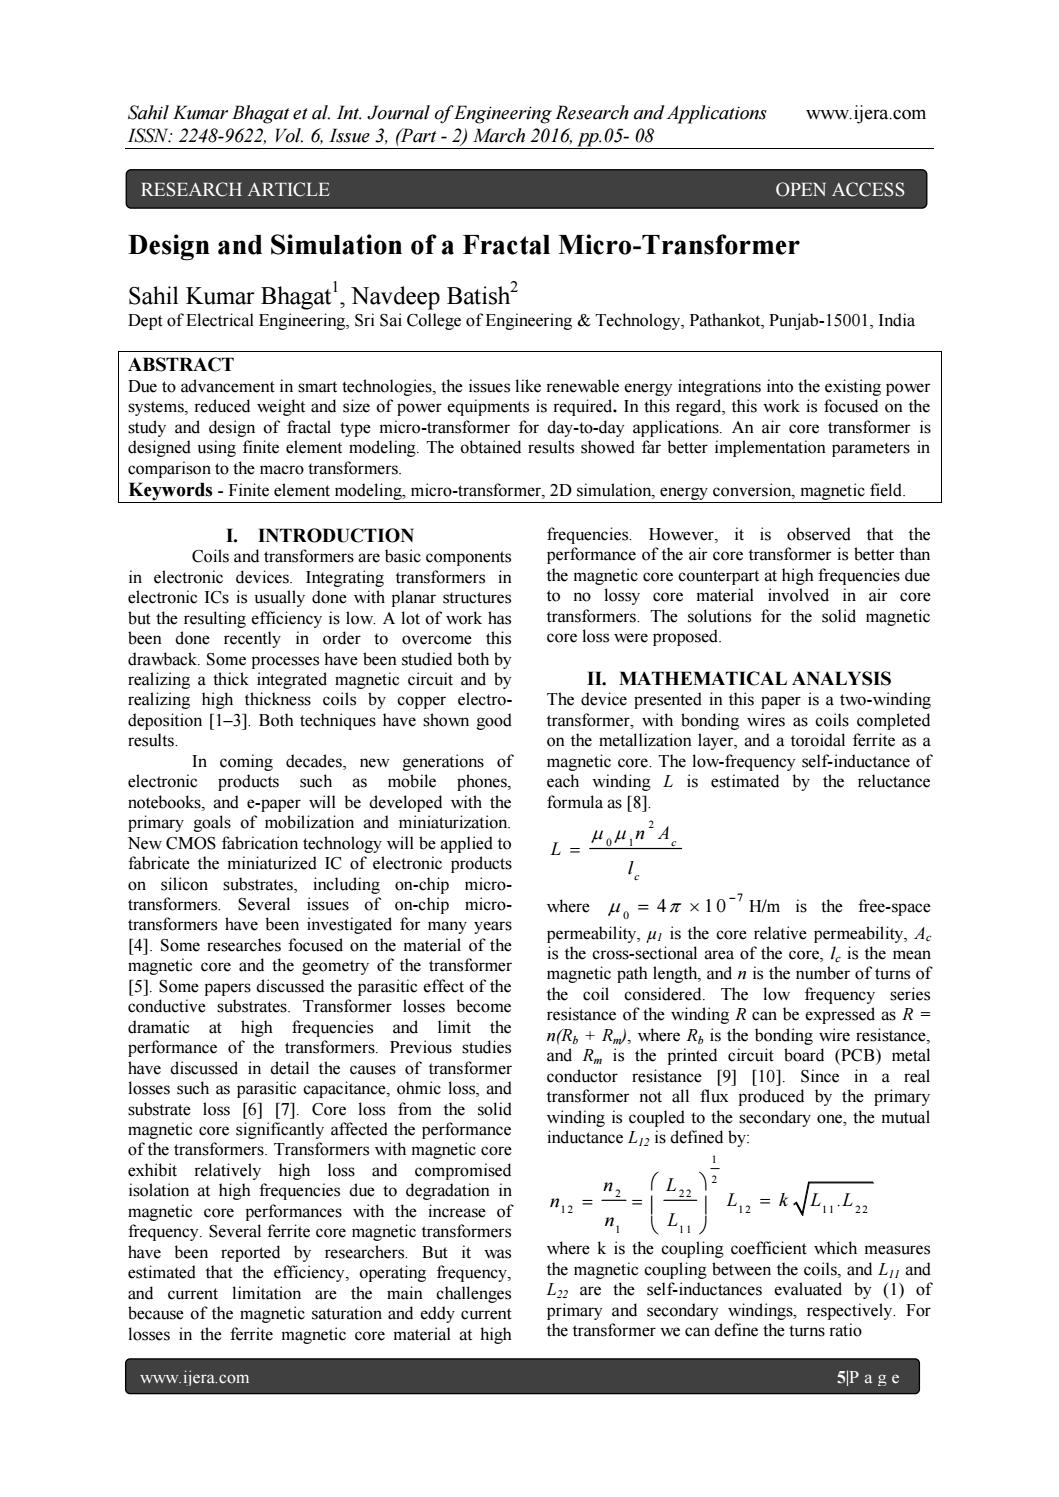 Design and Simulation of a Fractal Micro-Transformer by ijera editor